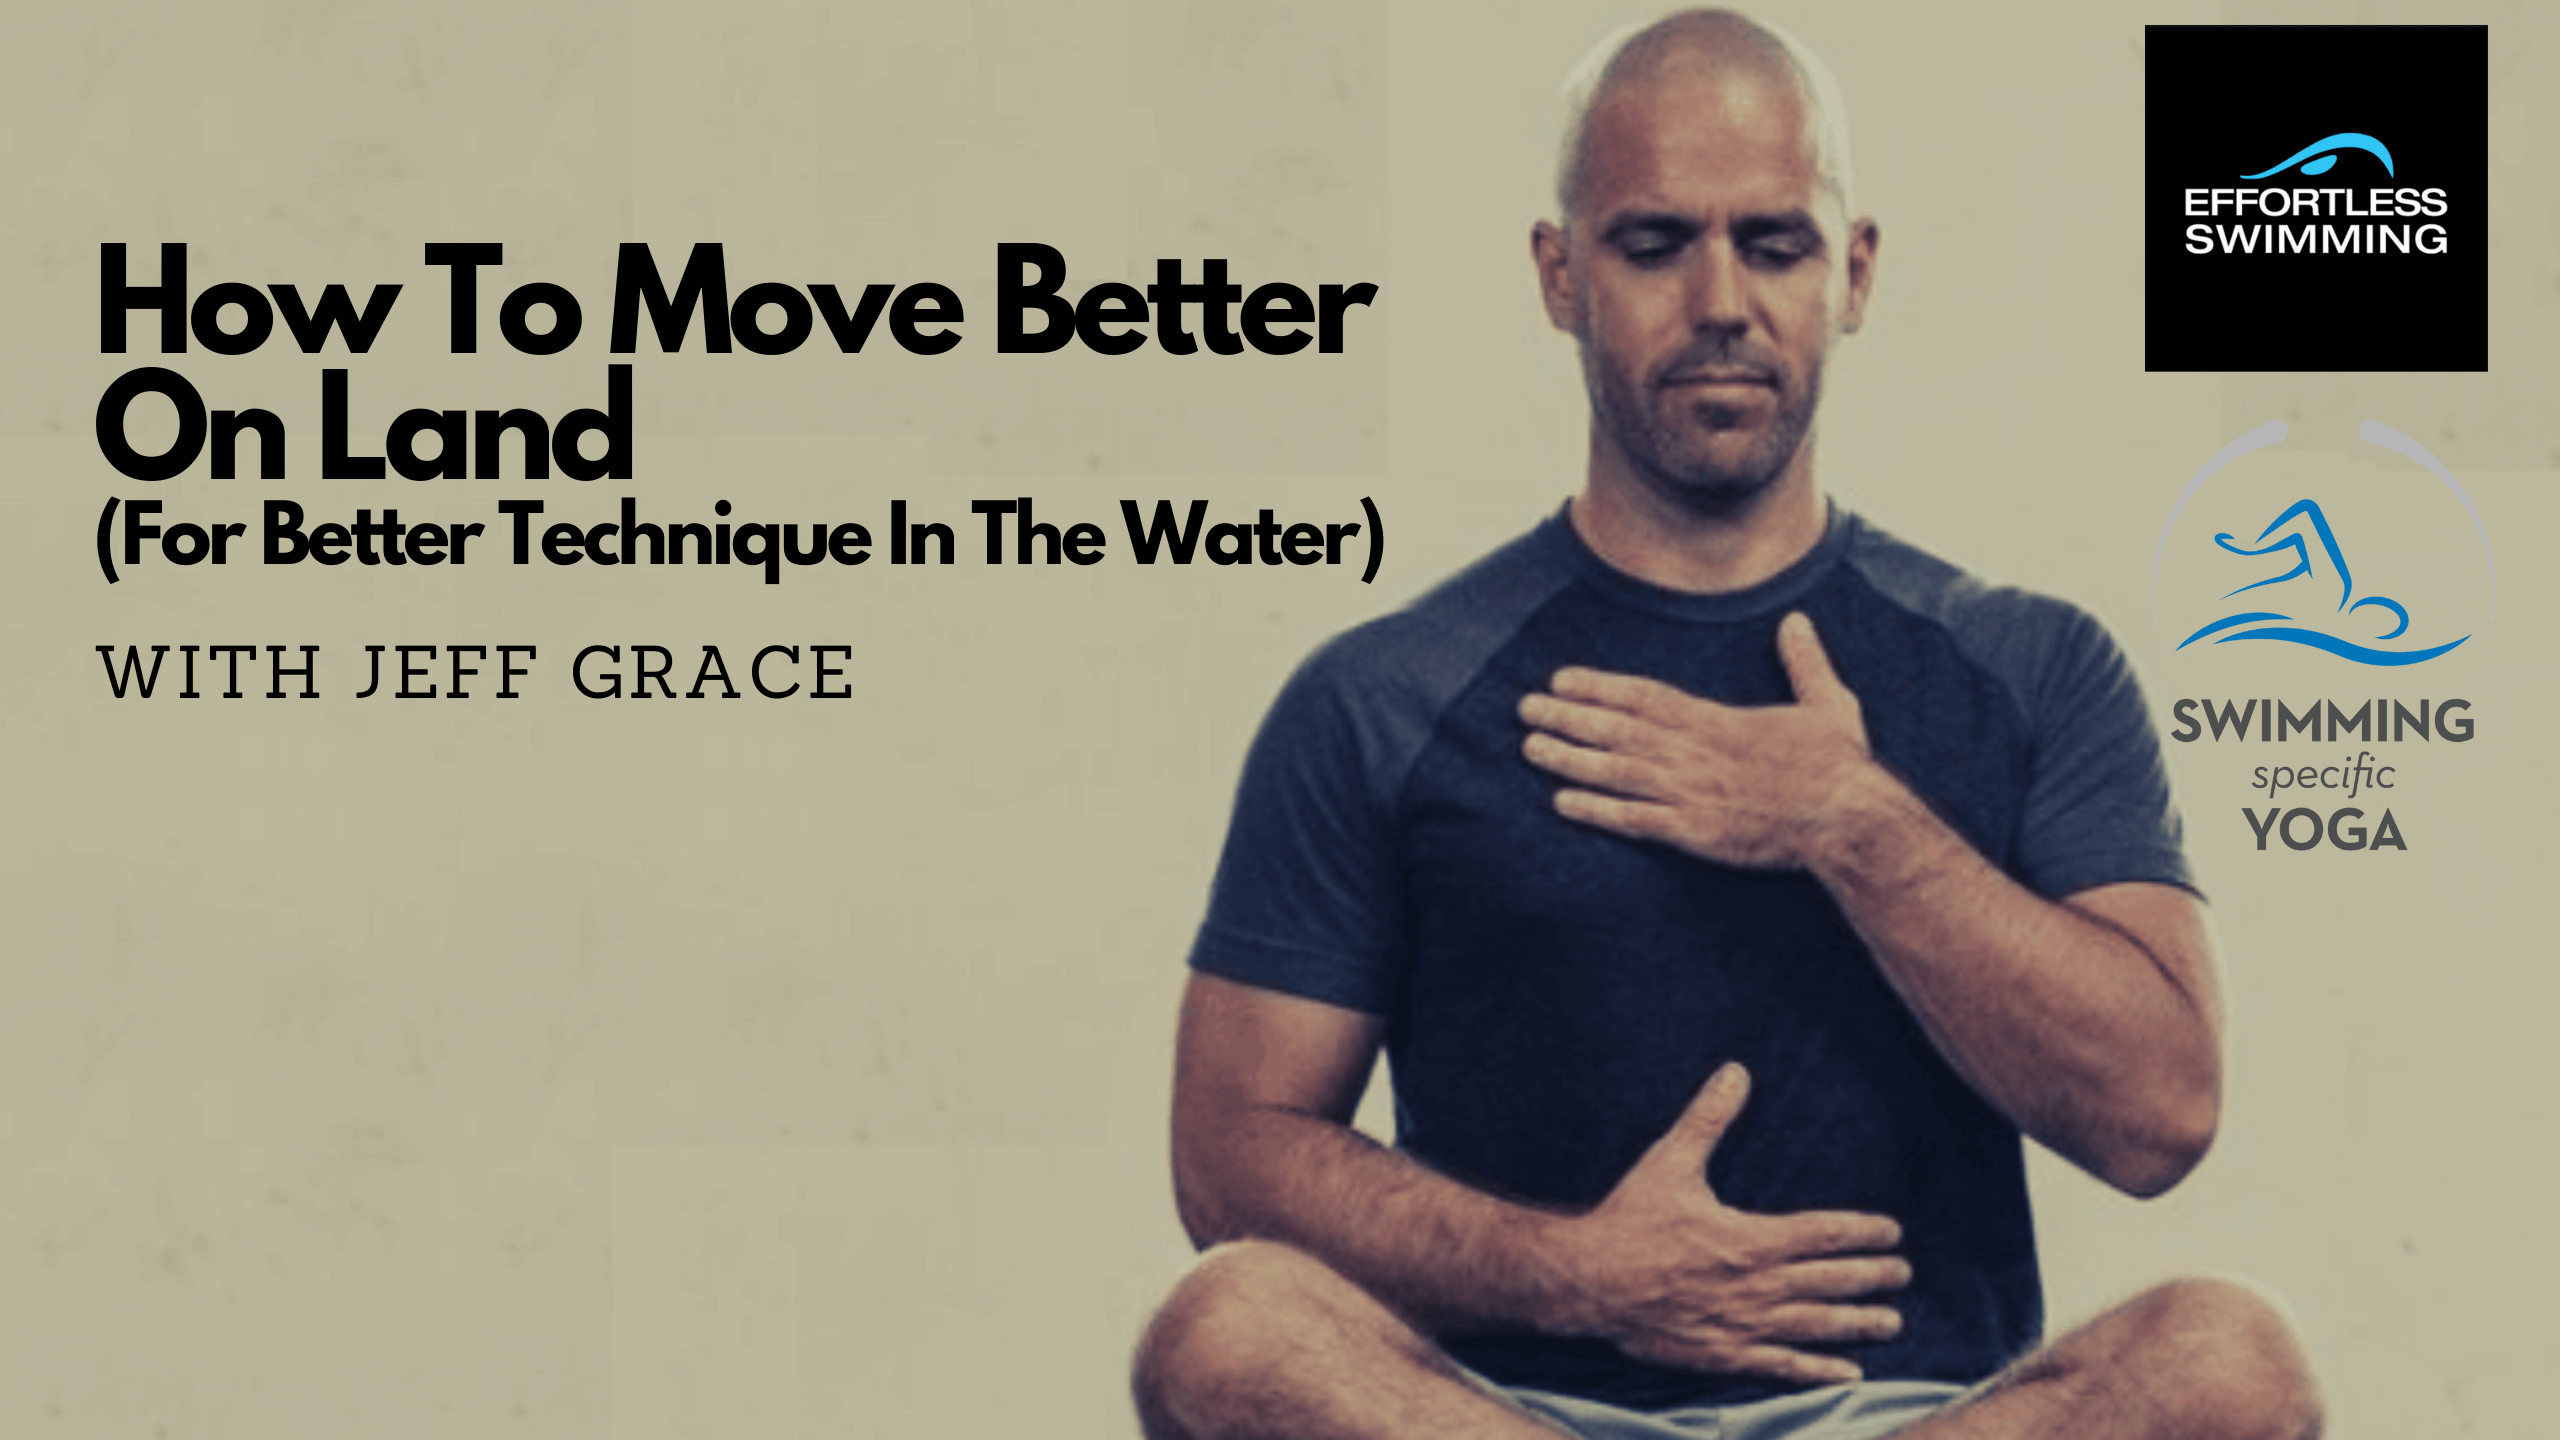 How To Move Better On Land (For Better Technique In The Water) with Jeff Grace